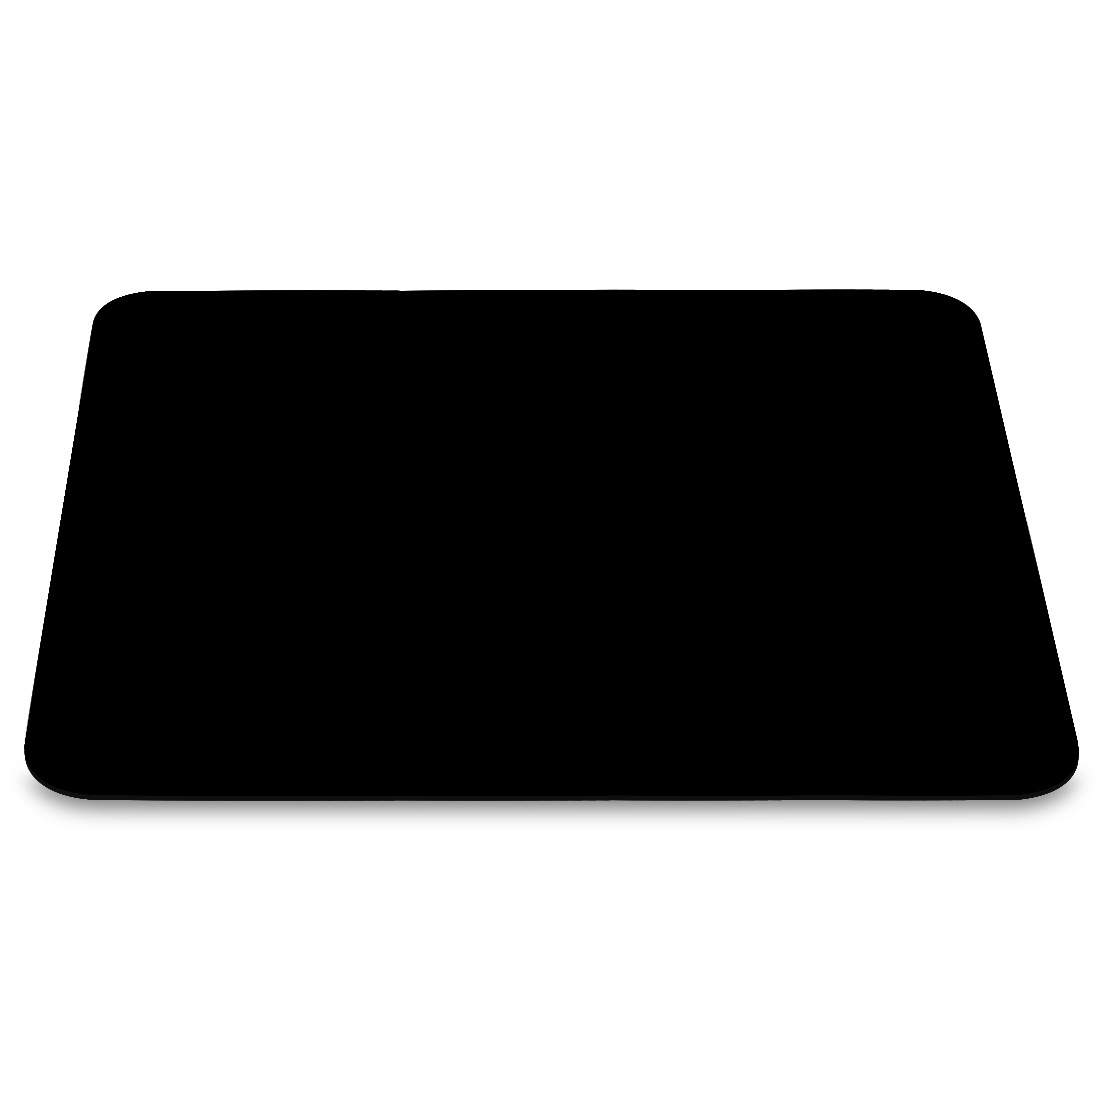 20/30/40cm Acrylic Reflective Display Table Background Boards for Product Table Photography Shooting Equipment 30cm